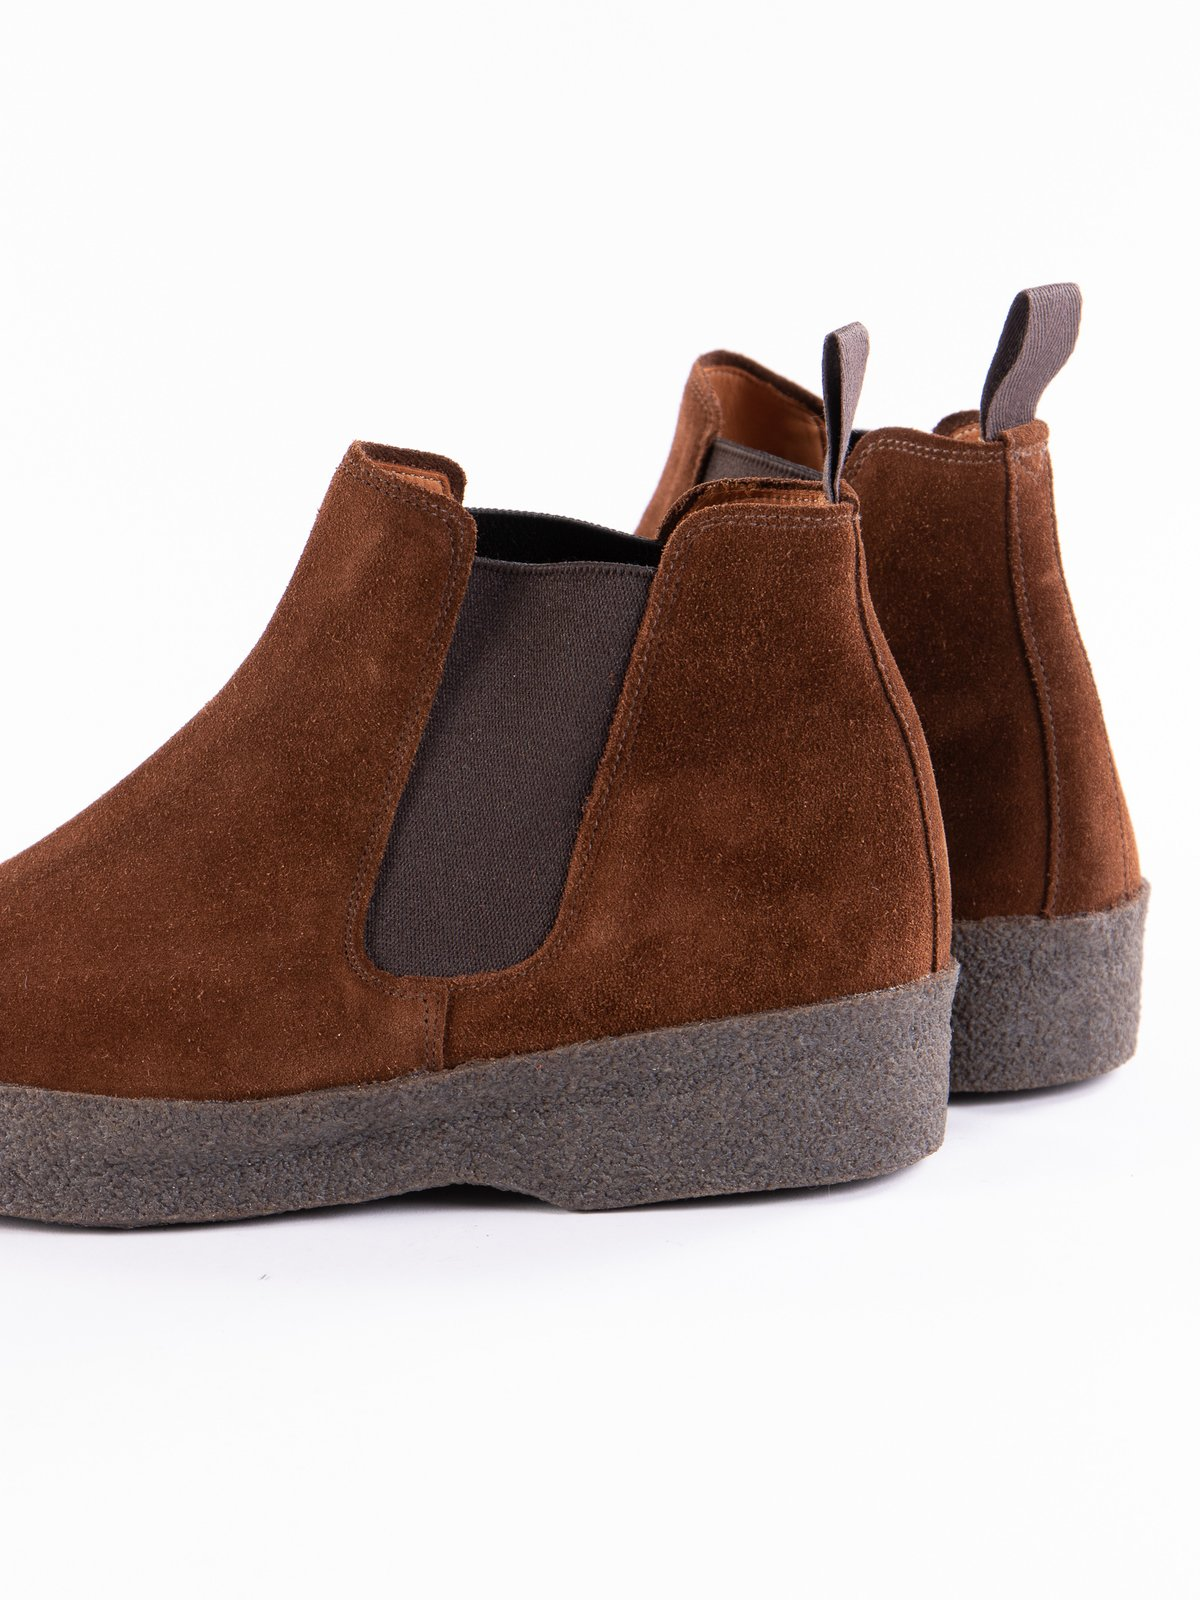 Polo Snuff Suede Chelsea Boot - Image 4